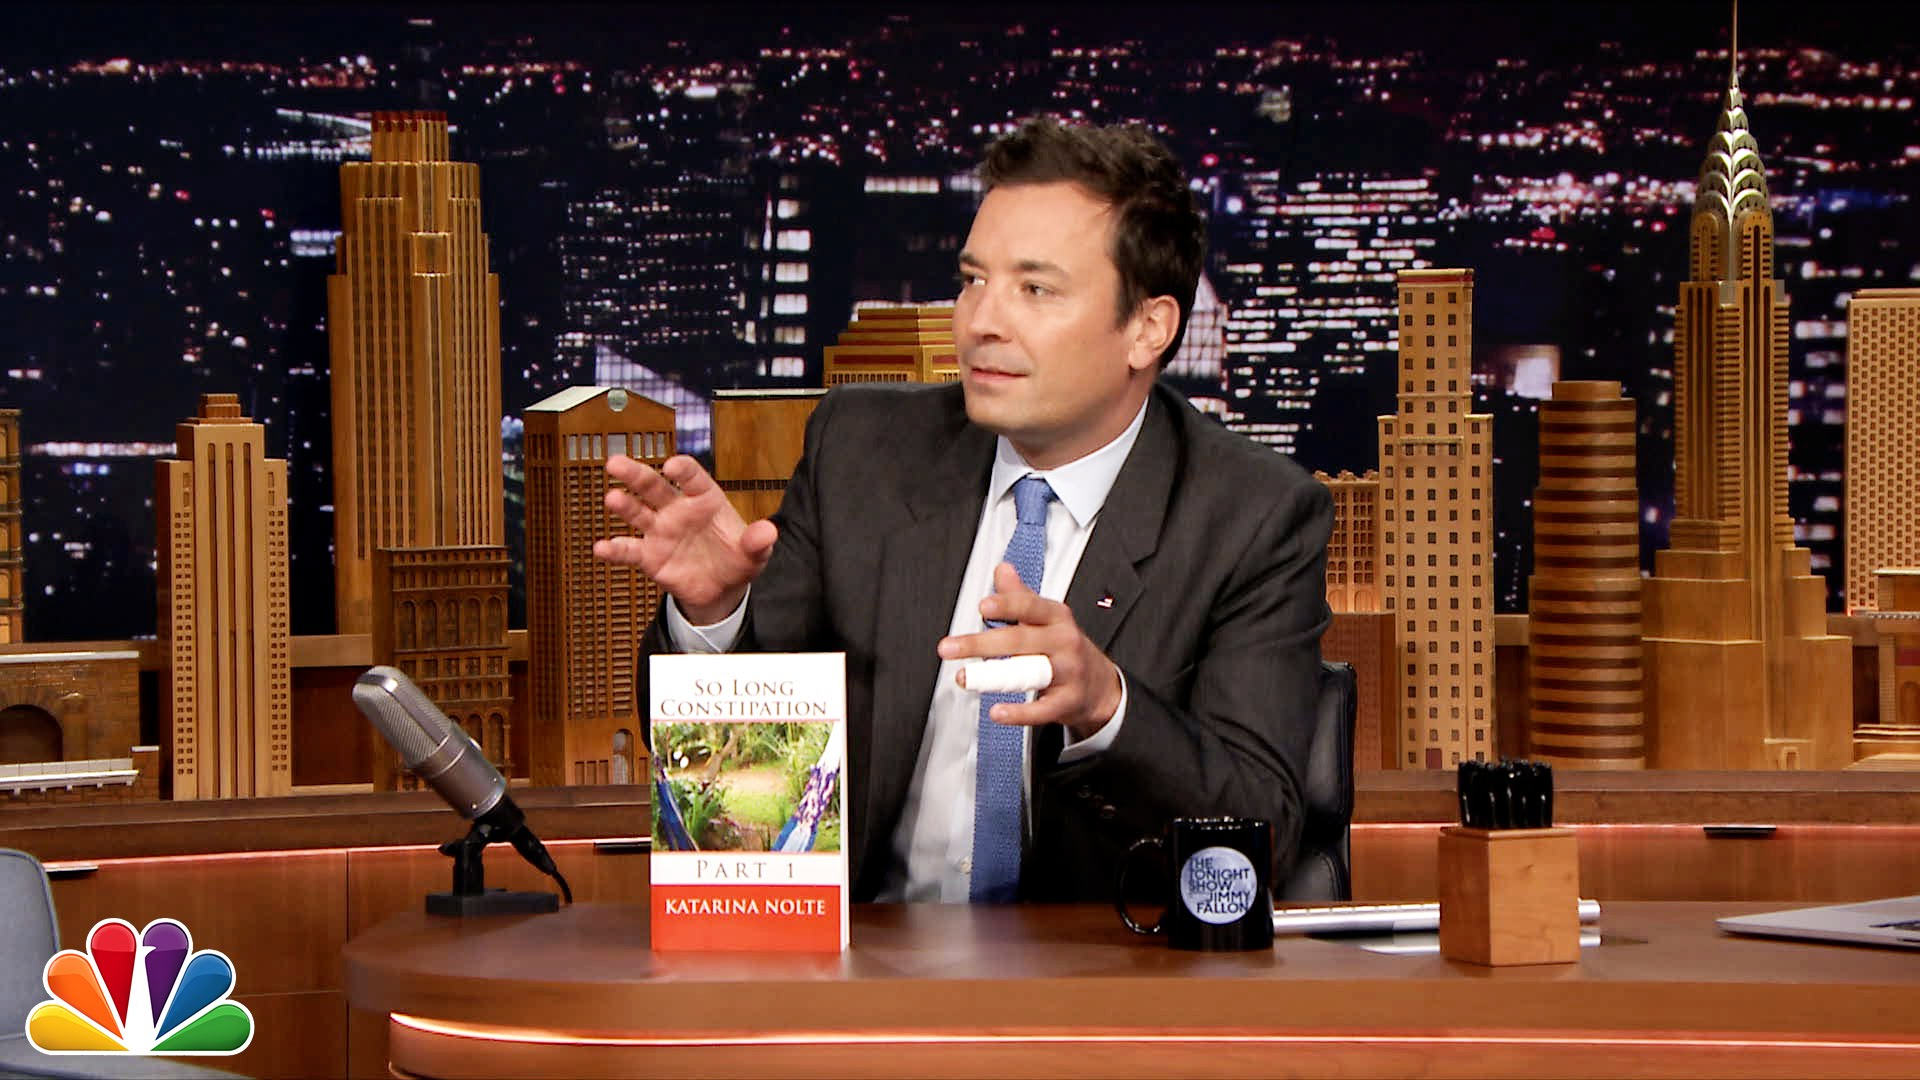 Watch Late Night with Jimmy Fallon Season  - Do Not Read: So Long Constipation, Part 1 Online